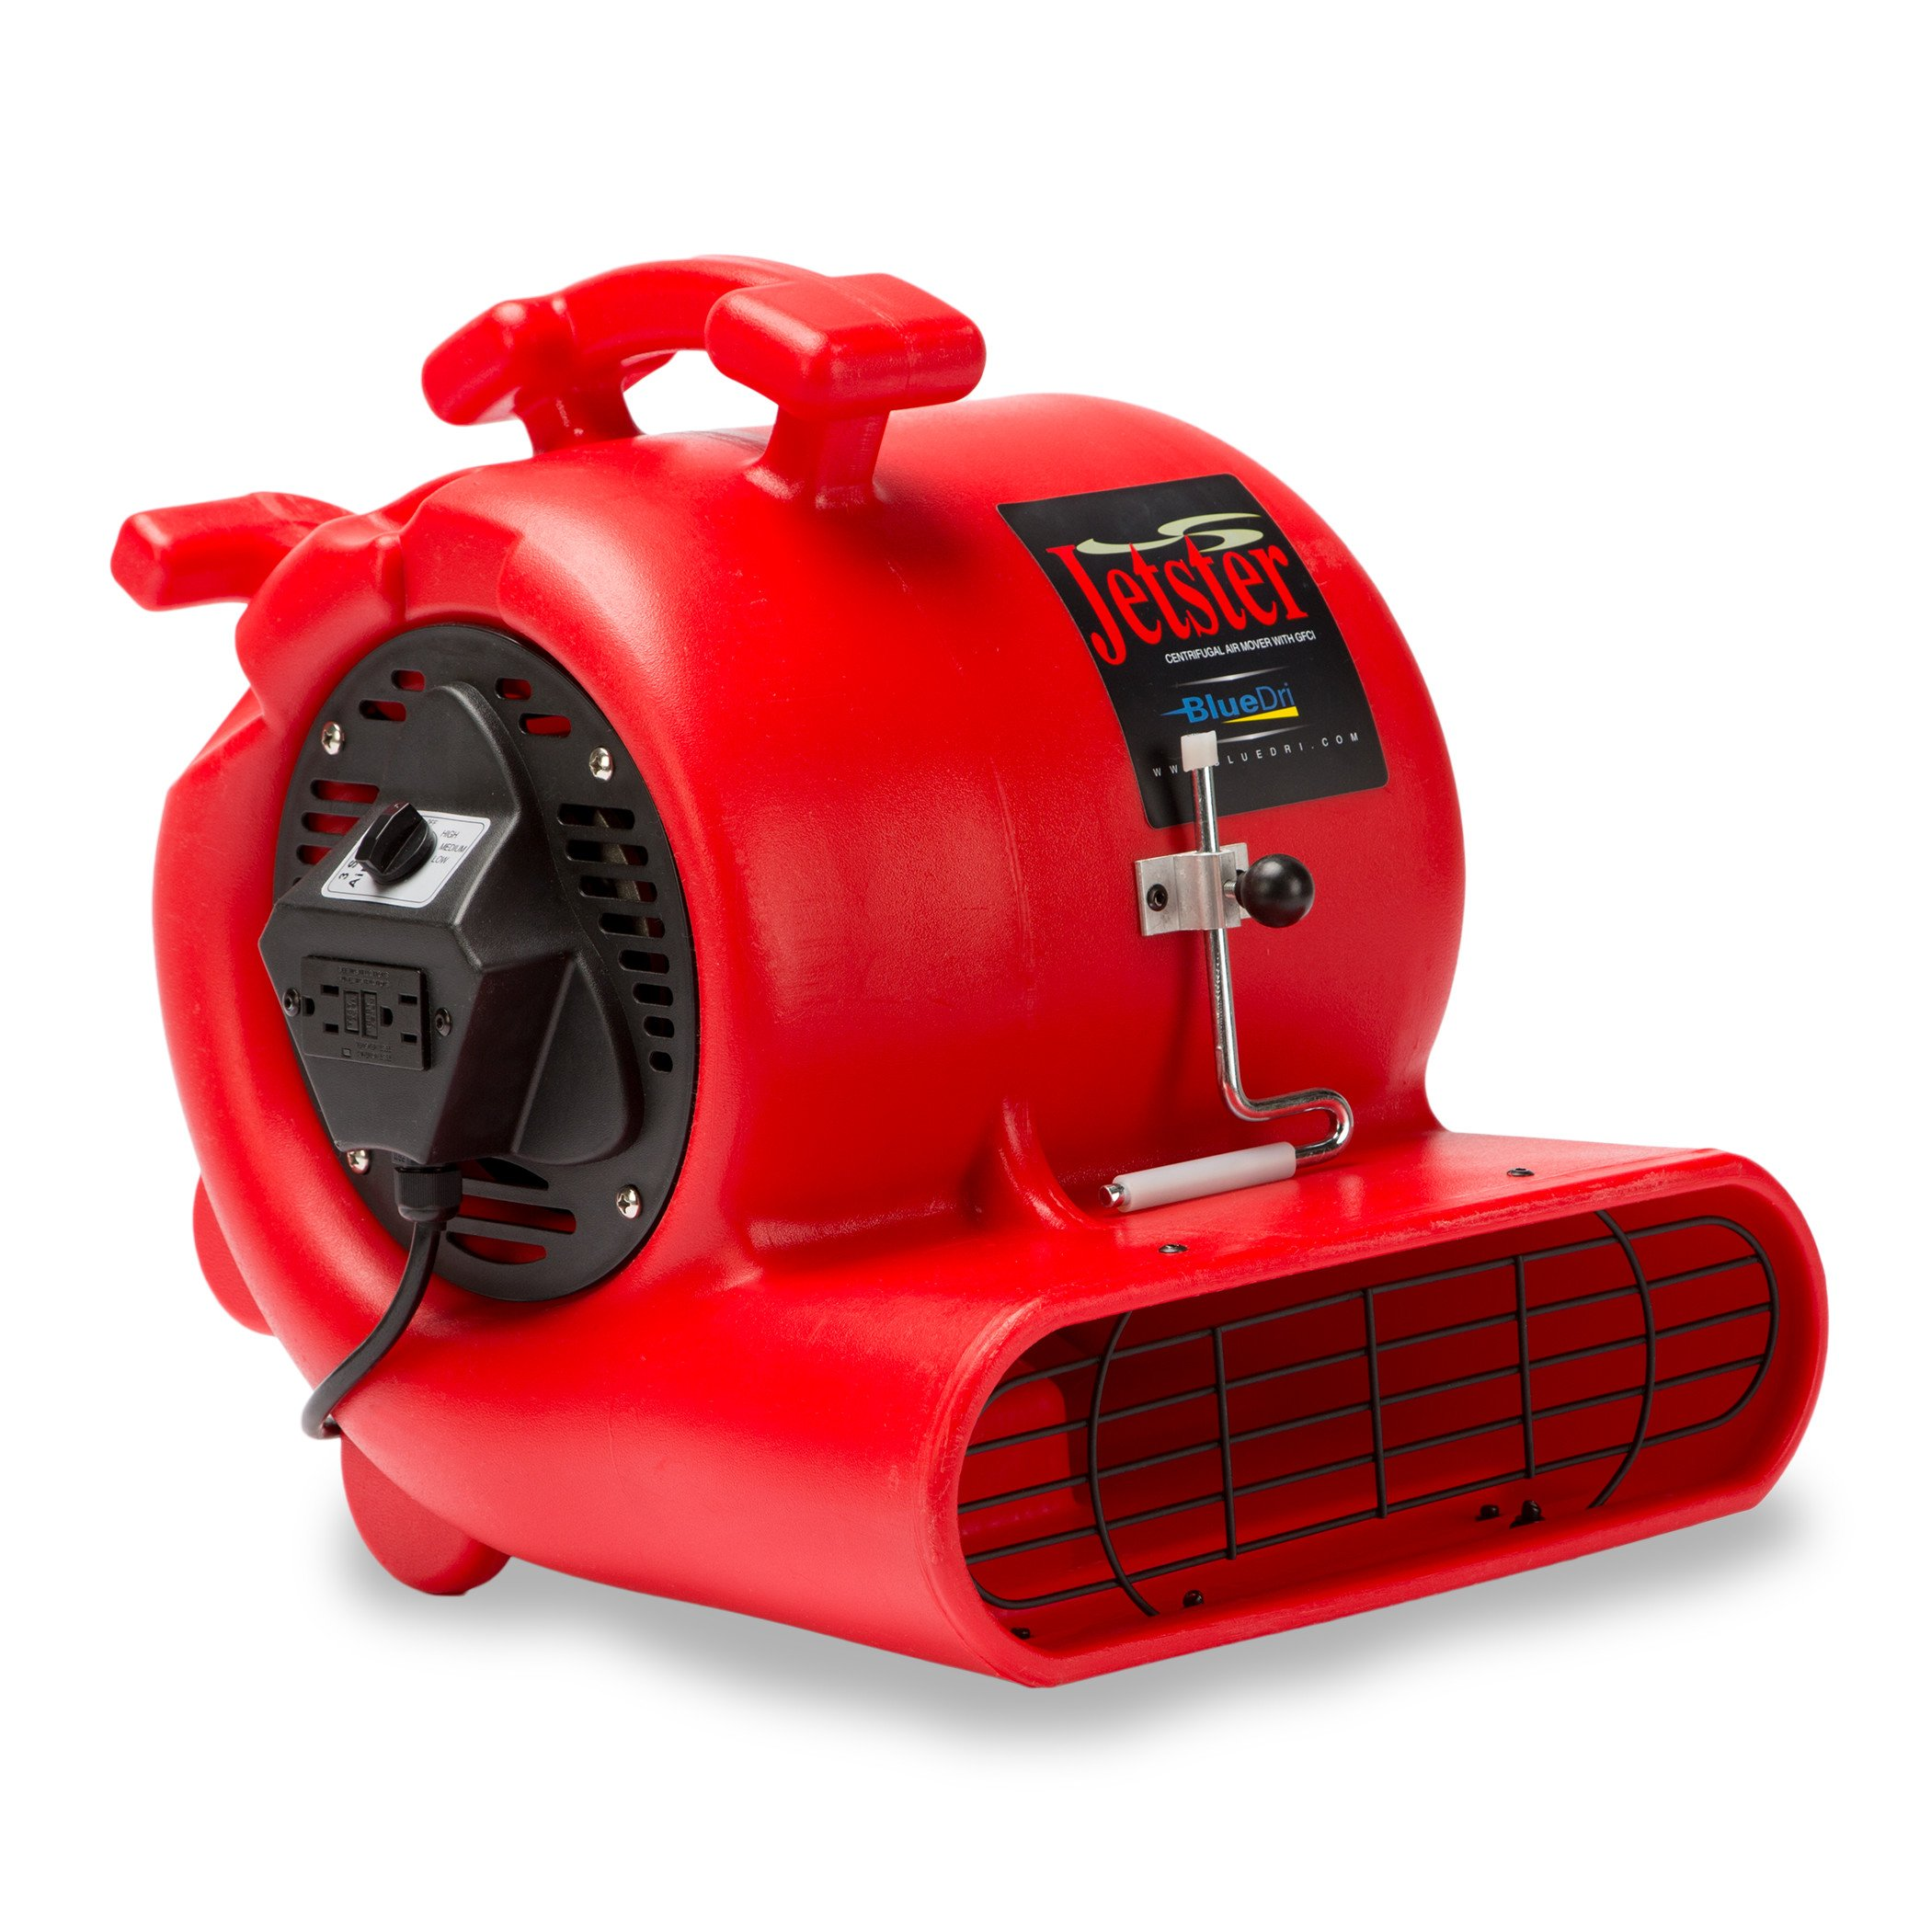 BlueDri Jetster 0.33 HP Air Mover Carpet Dryer with Carpet Clamp RED